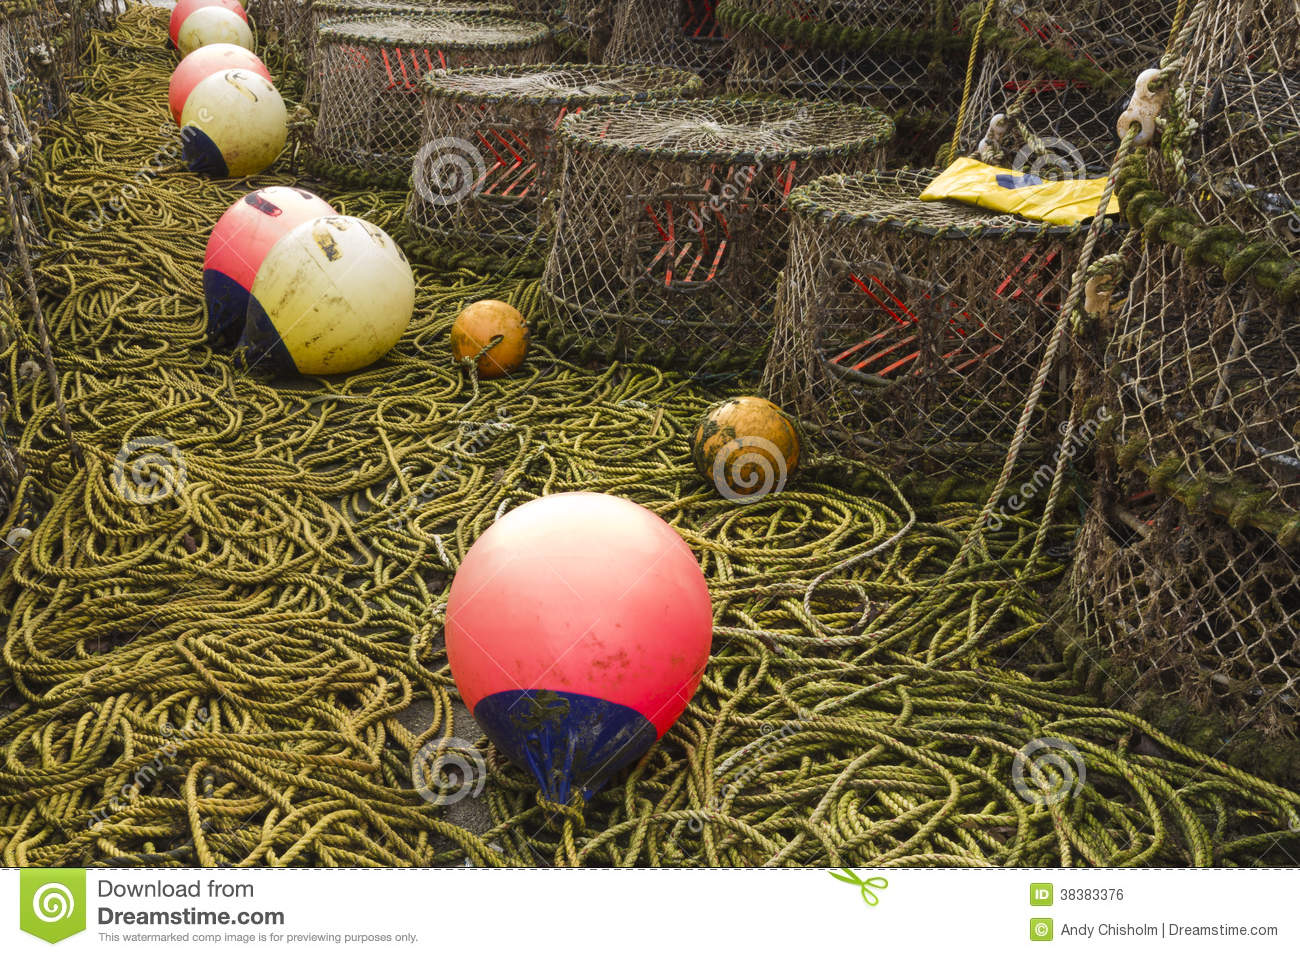 Lobster pots and associated equipment